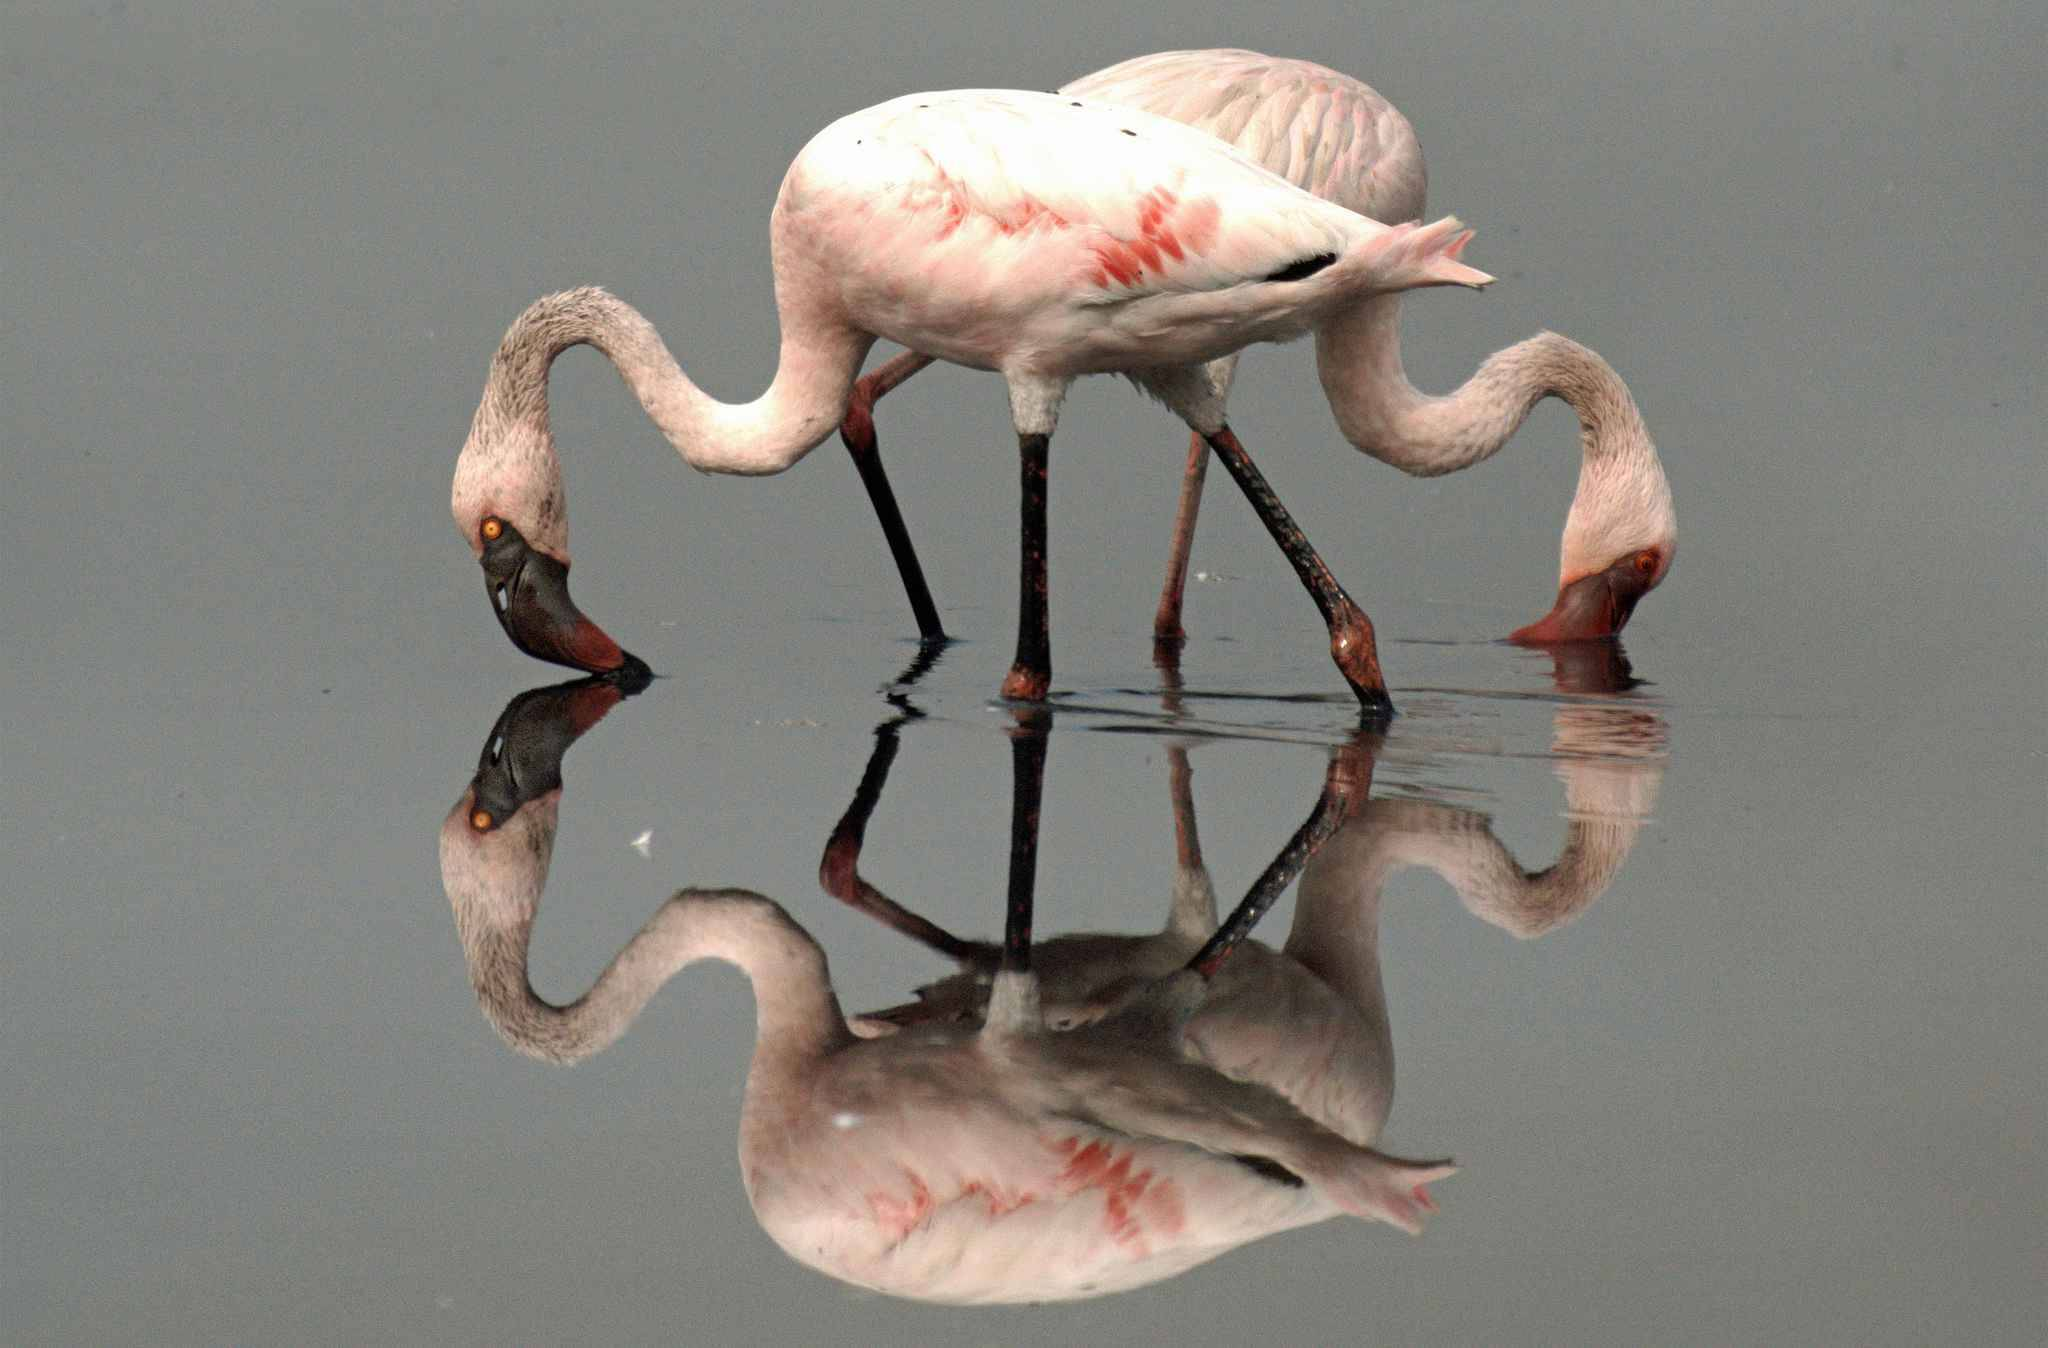 PIC BY VISHWANATH MADHUKAR SHINDE/CATERS NEWS - (PICTURED: Two flamingoes create a stunning four point reflection.) - These stunning mirror image shots reveal the beauty in still water. From stags captured in the UK in the golden light of dawn to explorers appearing to walk on water at the salt flats of Bolivia, the gallery proves sometimes the only prop a photographer needs is H20.